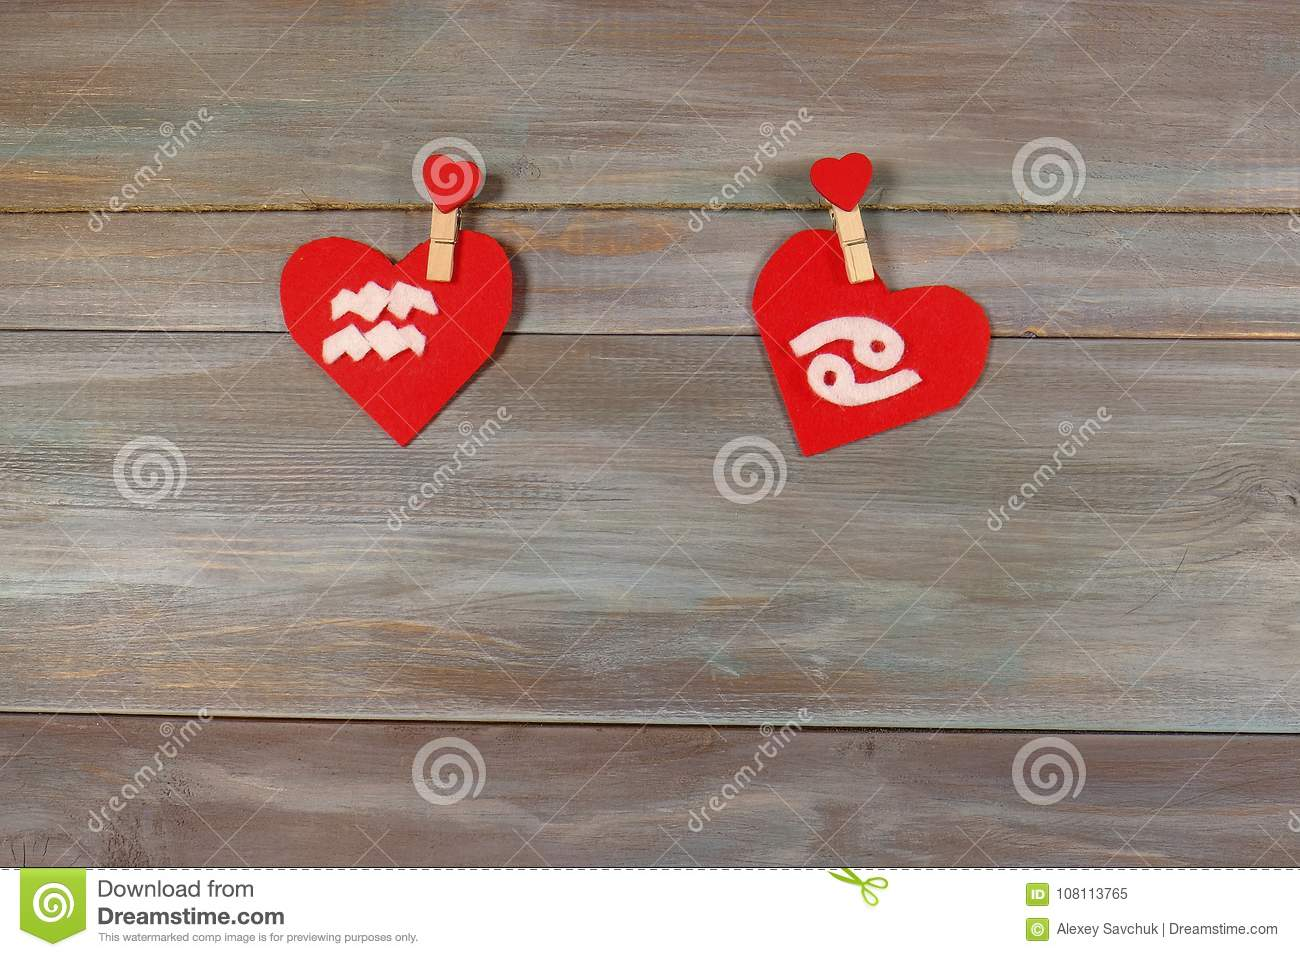 Aquarius and cancer. signs of the zodiac and heart. wooden backg